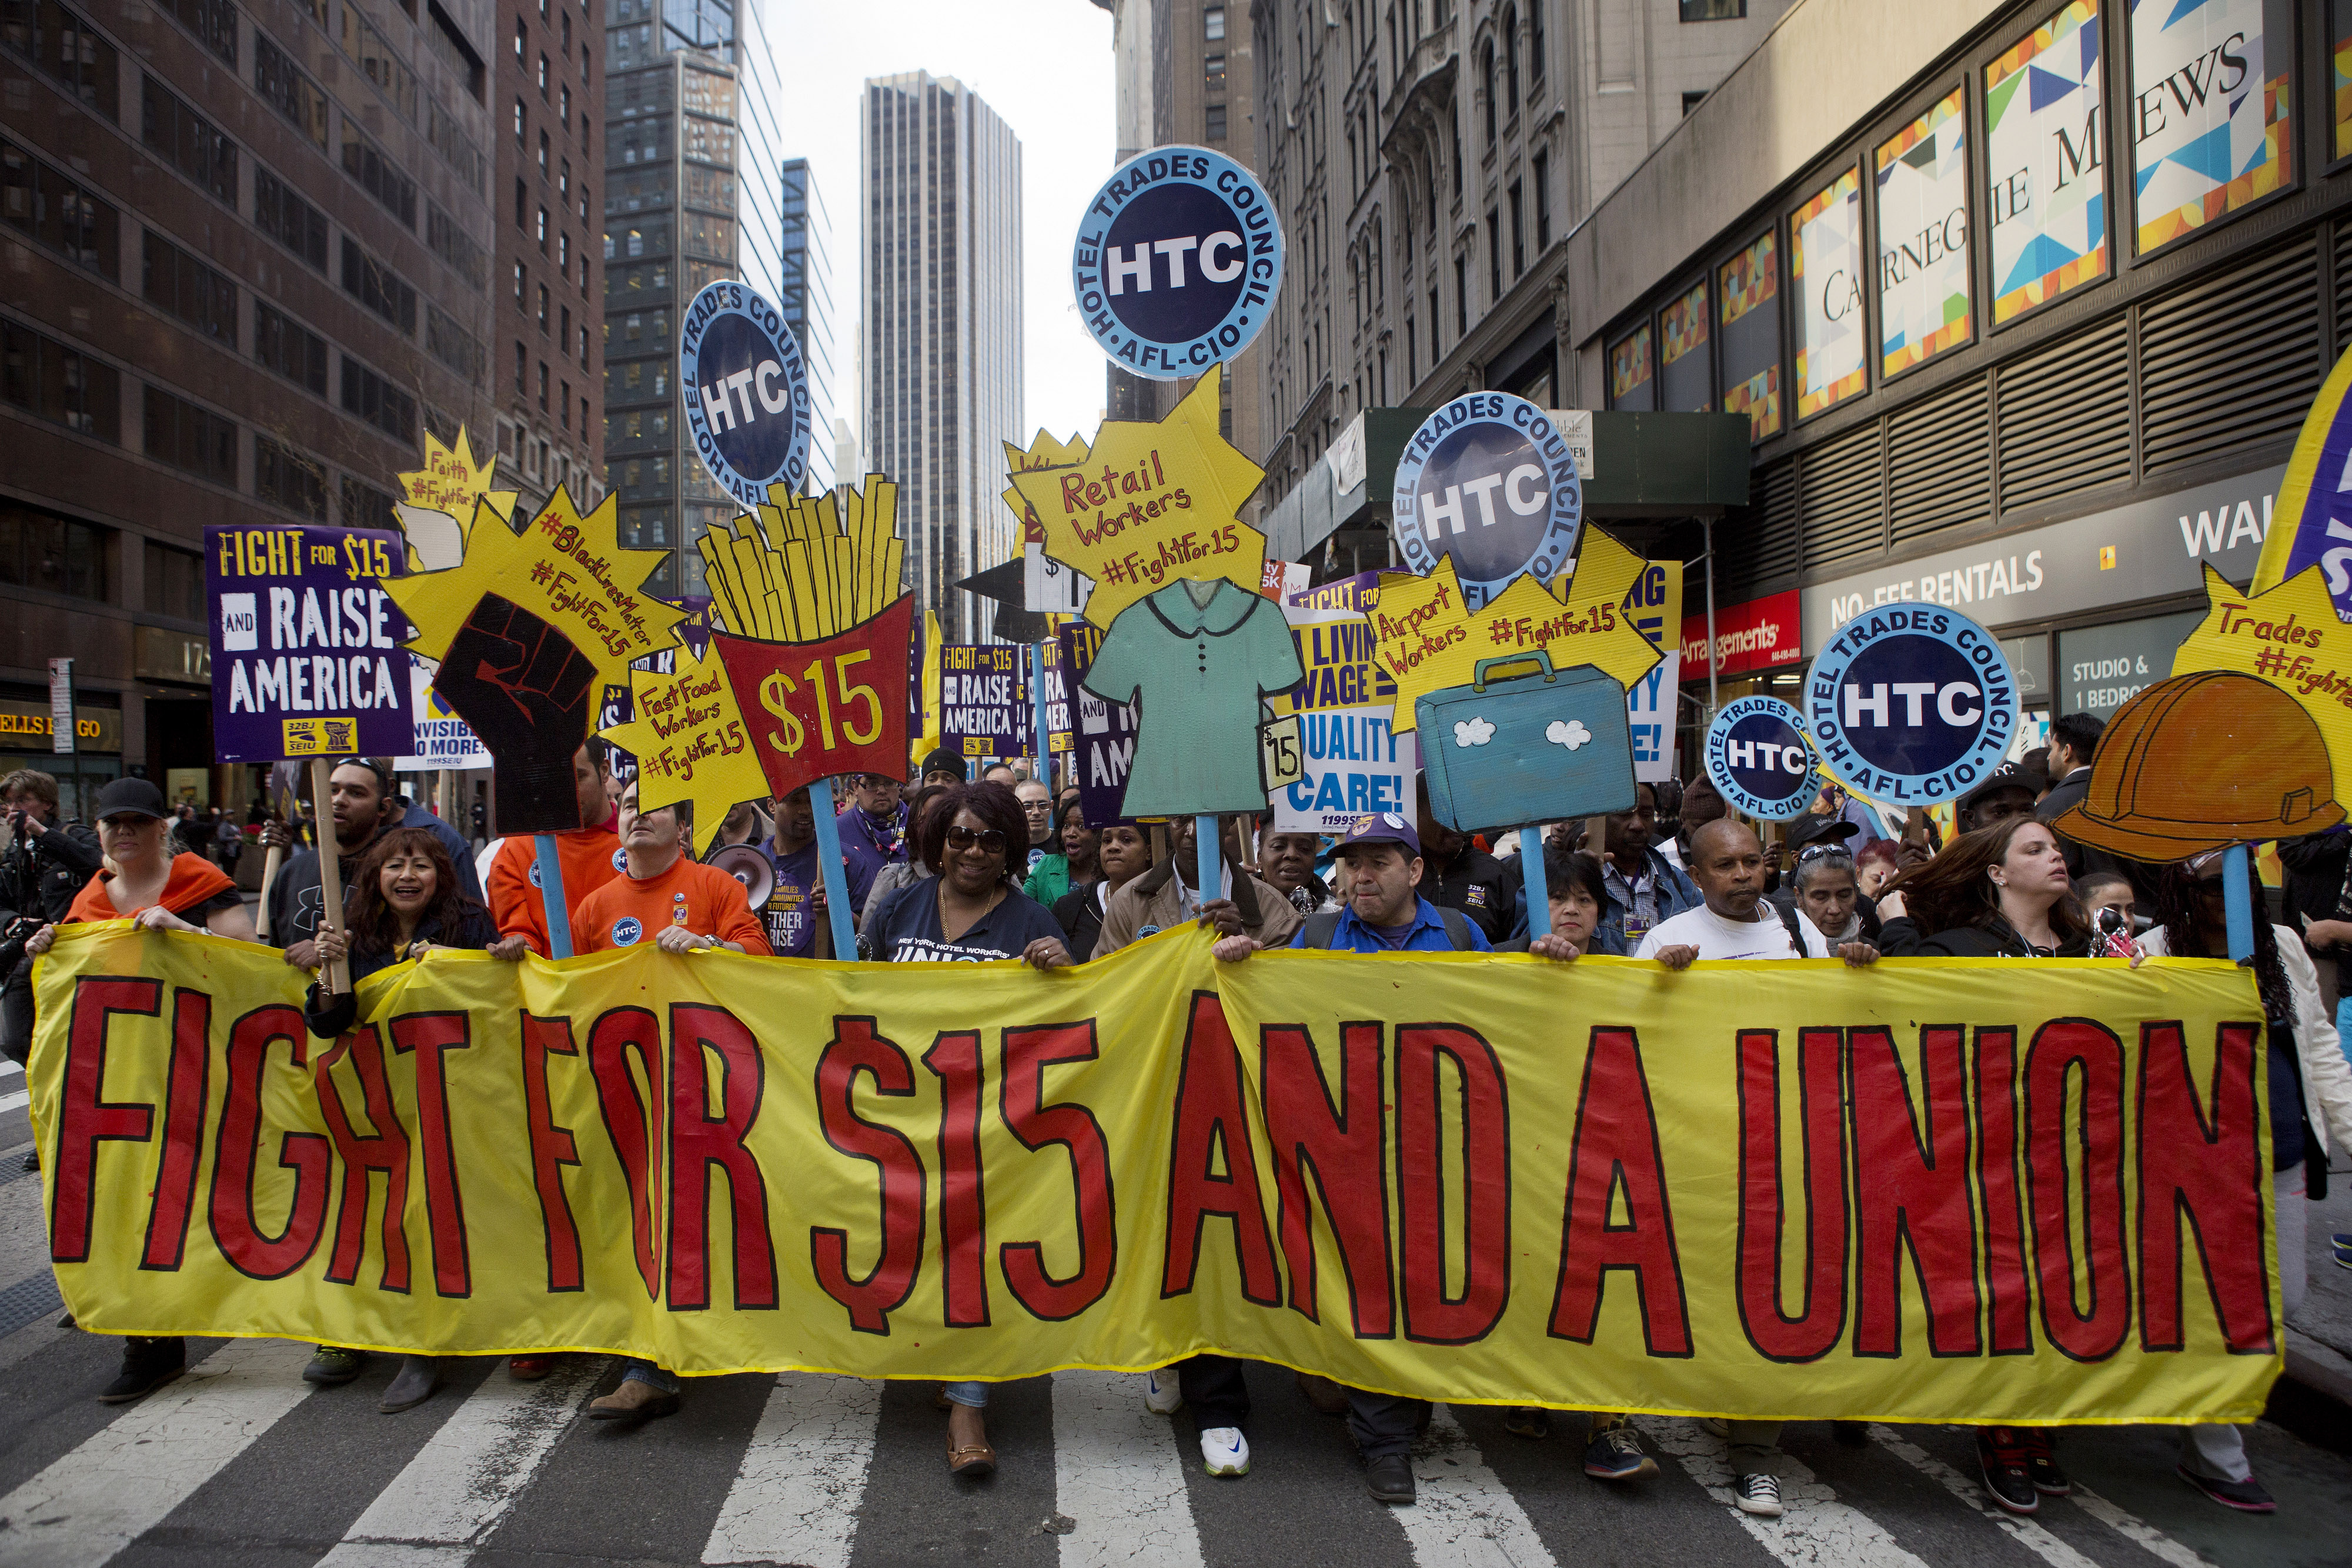 Protesters hold signs at a rally in support of minimum wage increase in New York, U.S., on Wednesday, April 15, 2015. Fast-food workers held rallies in 236 U.S. cities Wednesday in their biggest protest yet for higher pay and union rights. Photographer: Victor J. Blue/Bloomberg